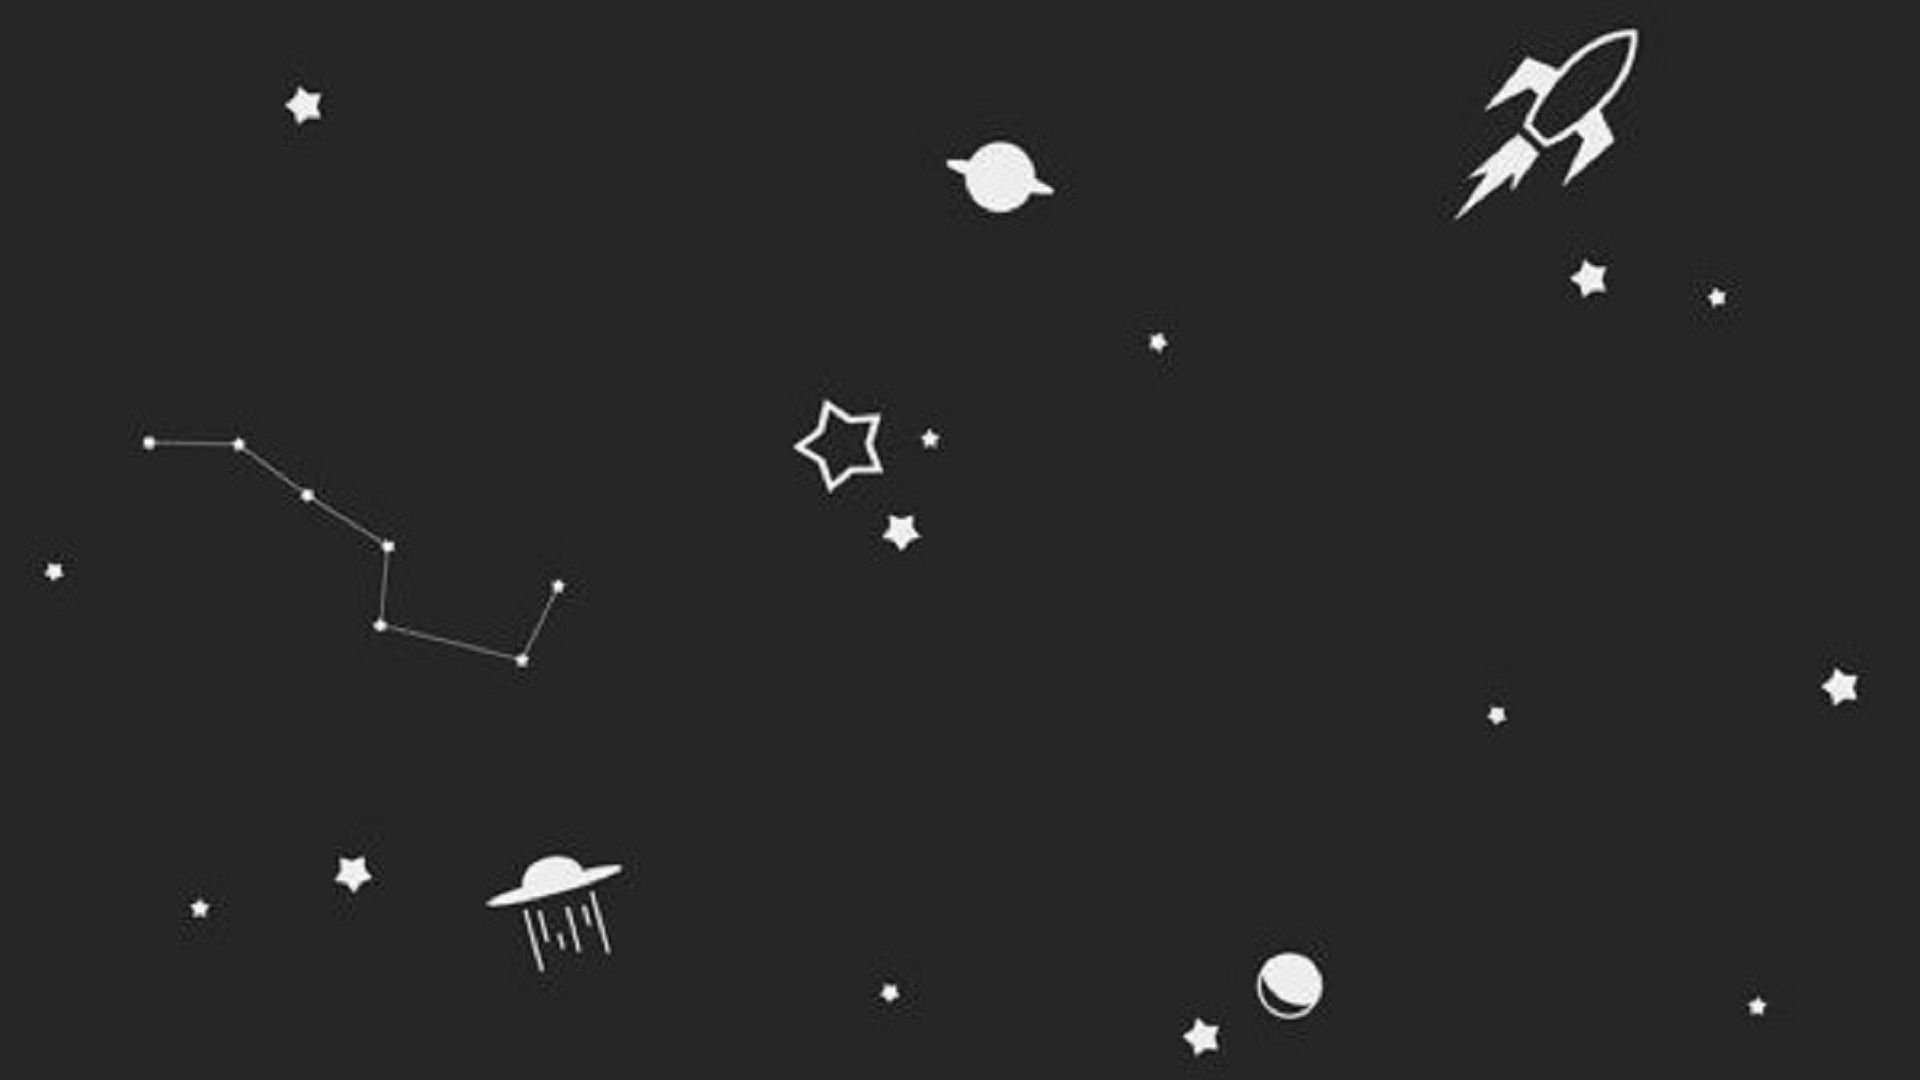 Aesthetic Space Laptop Wallpapers Top Free Aesthetic Space